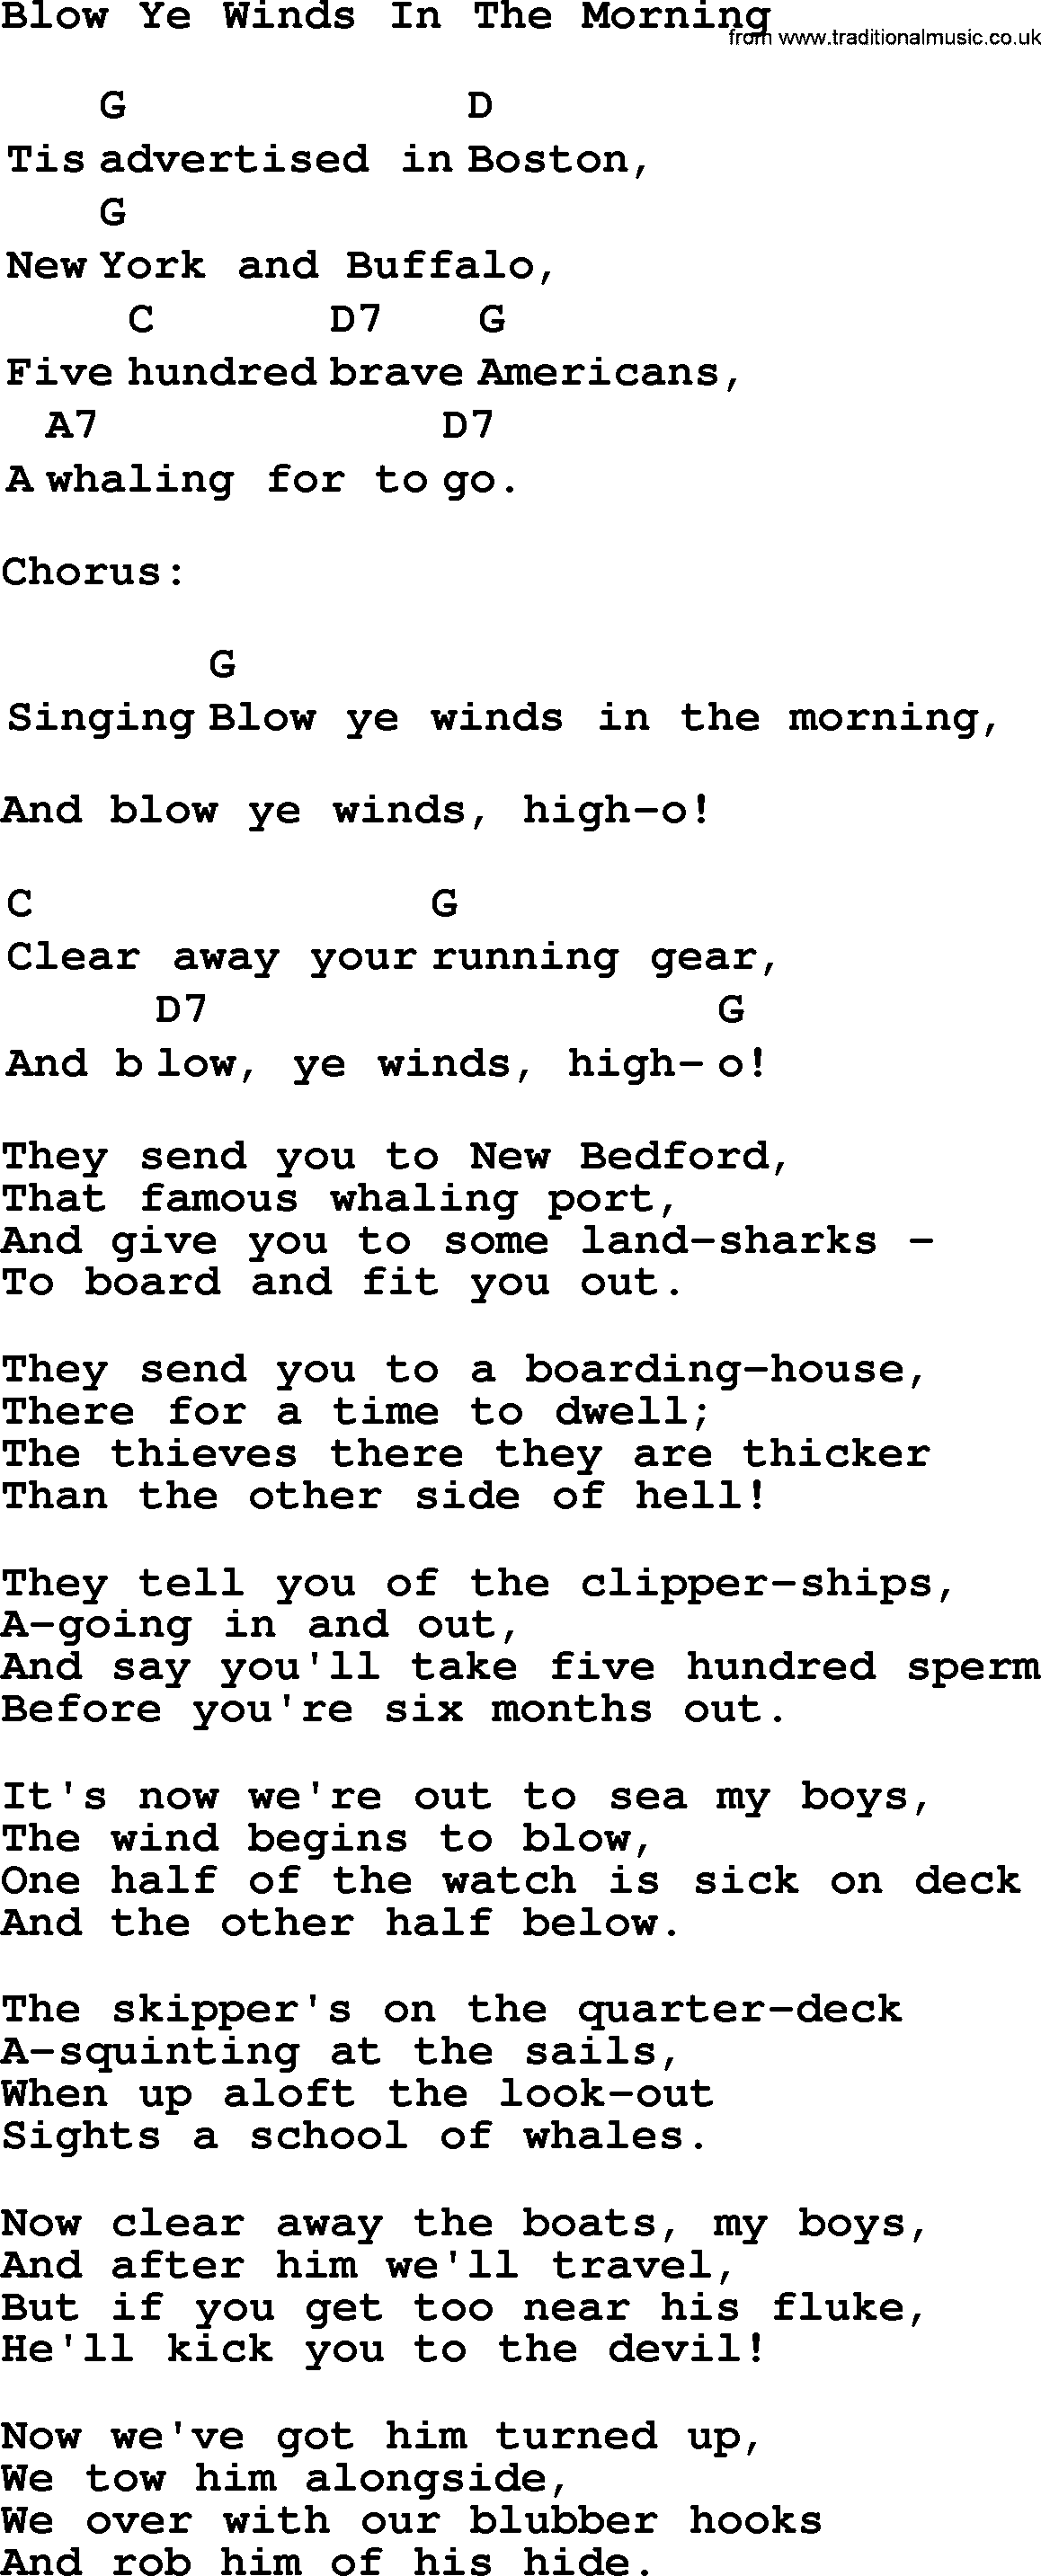 blowing in the wind lyrics